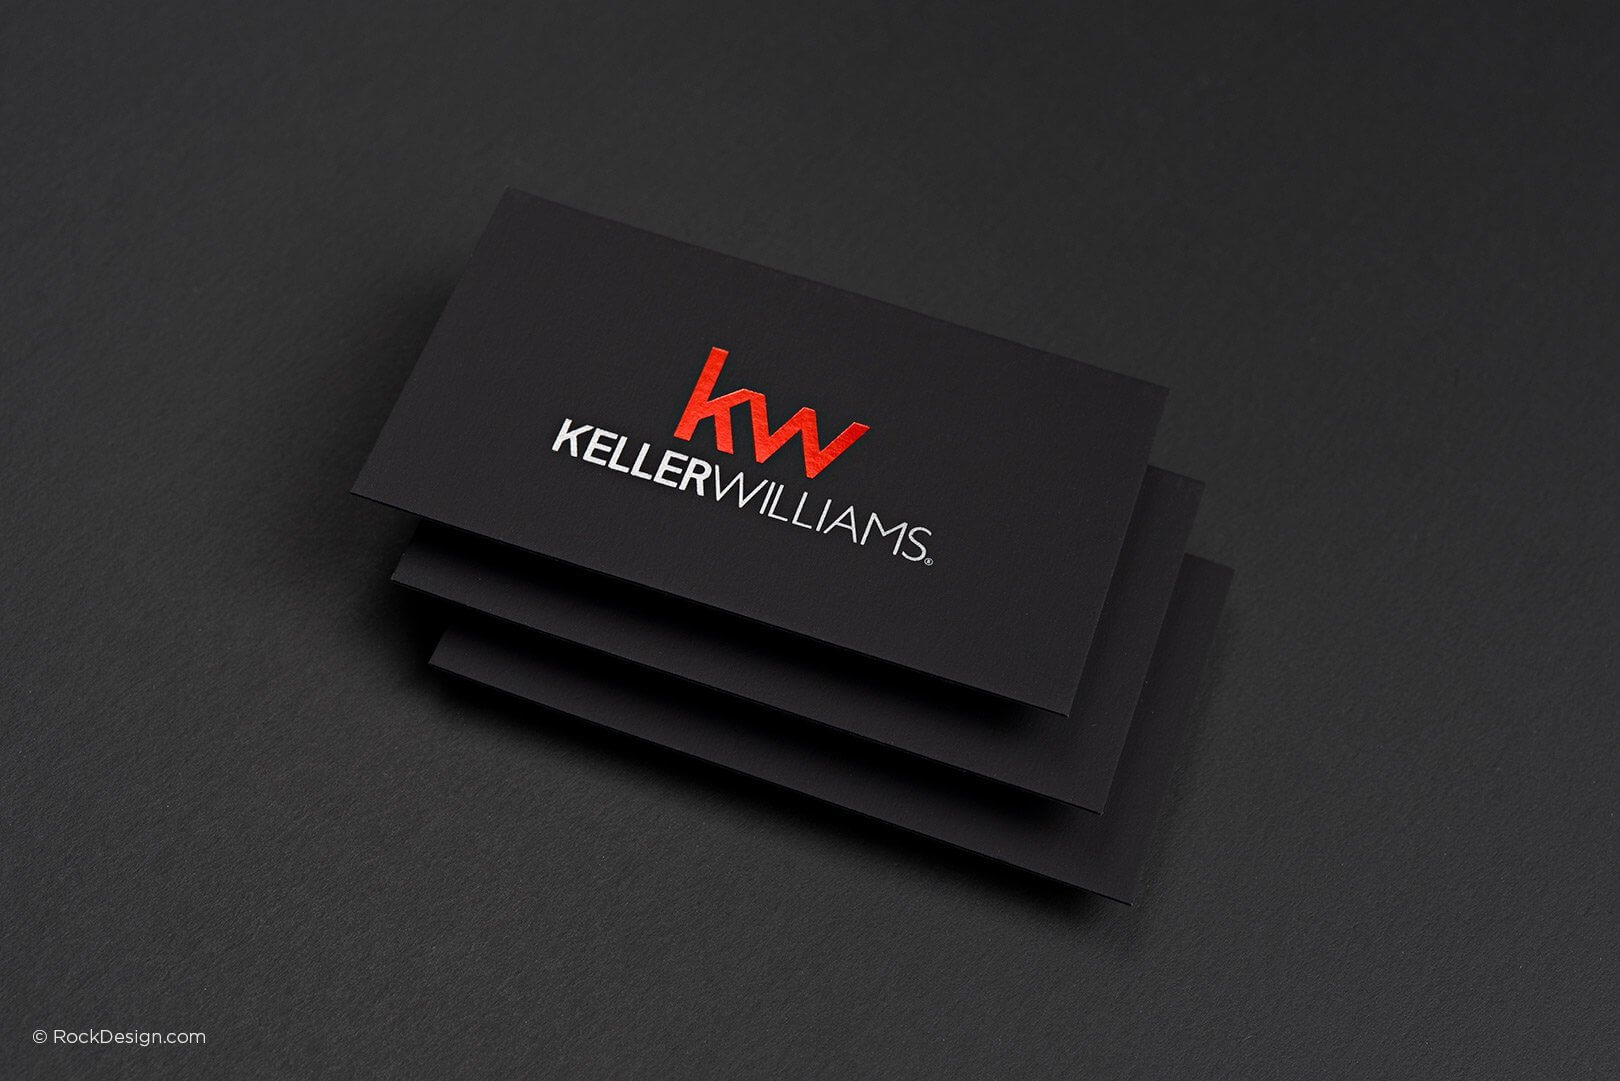 Keller Williams Business Card For Keller Williams Business Card Templates